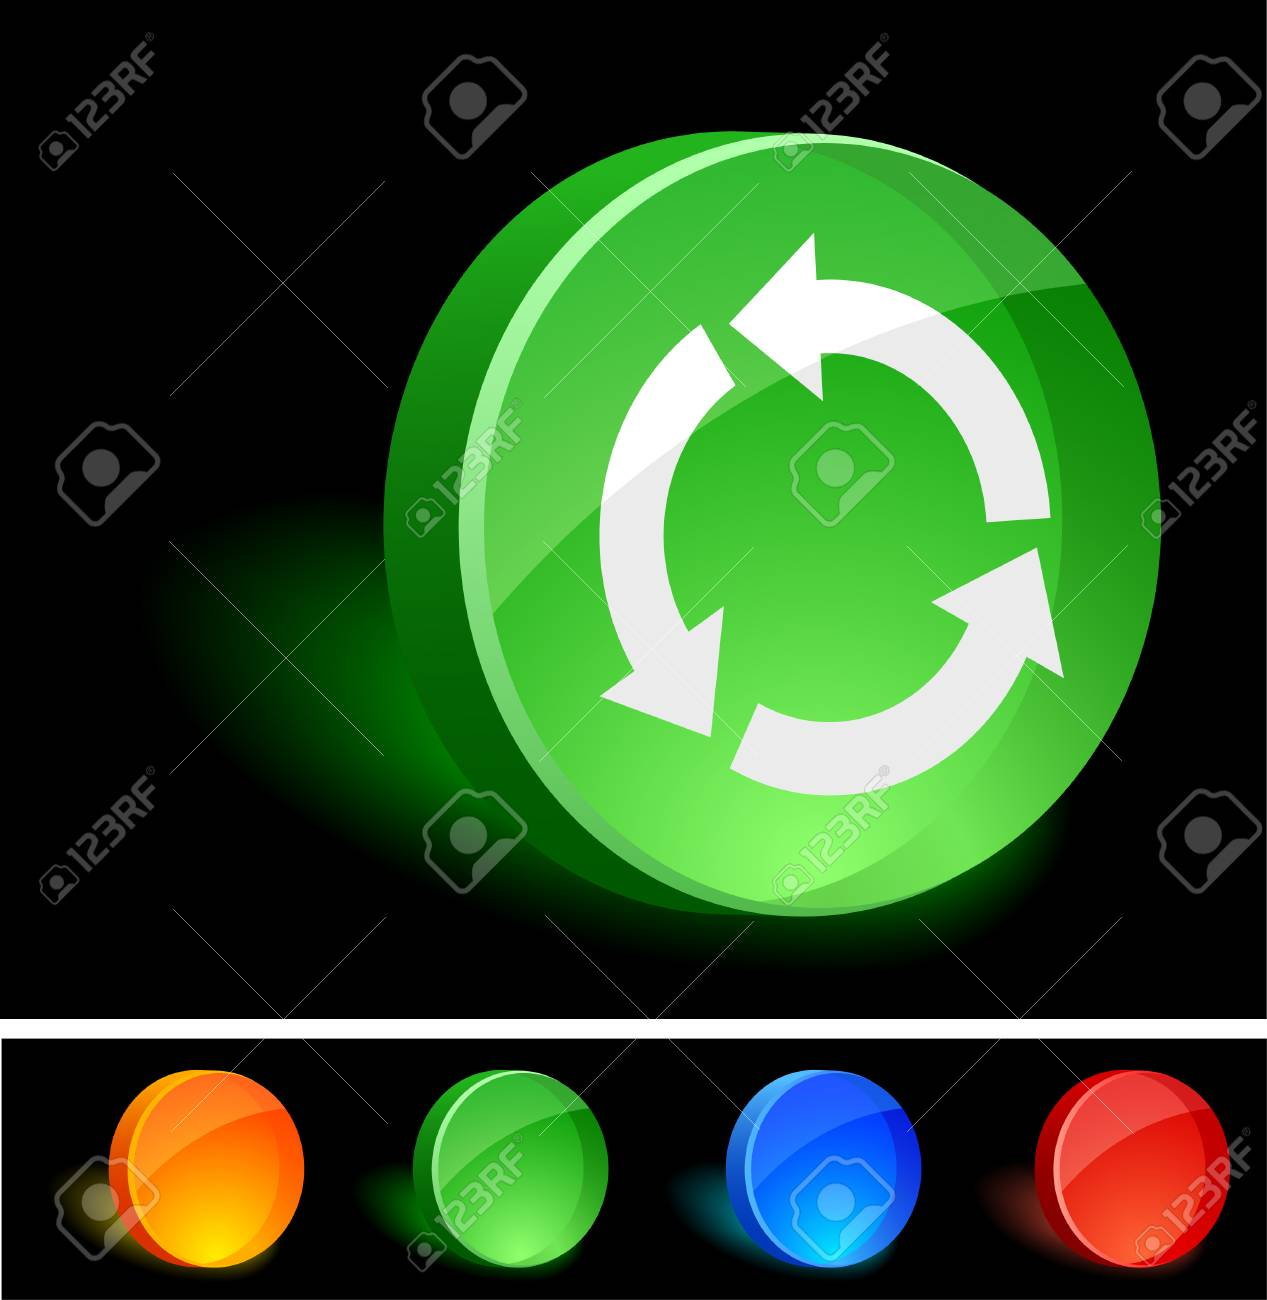 Recycle 3d icon. Vector illustration. Stock Vector - 5021575